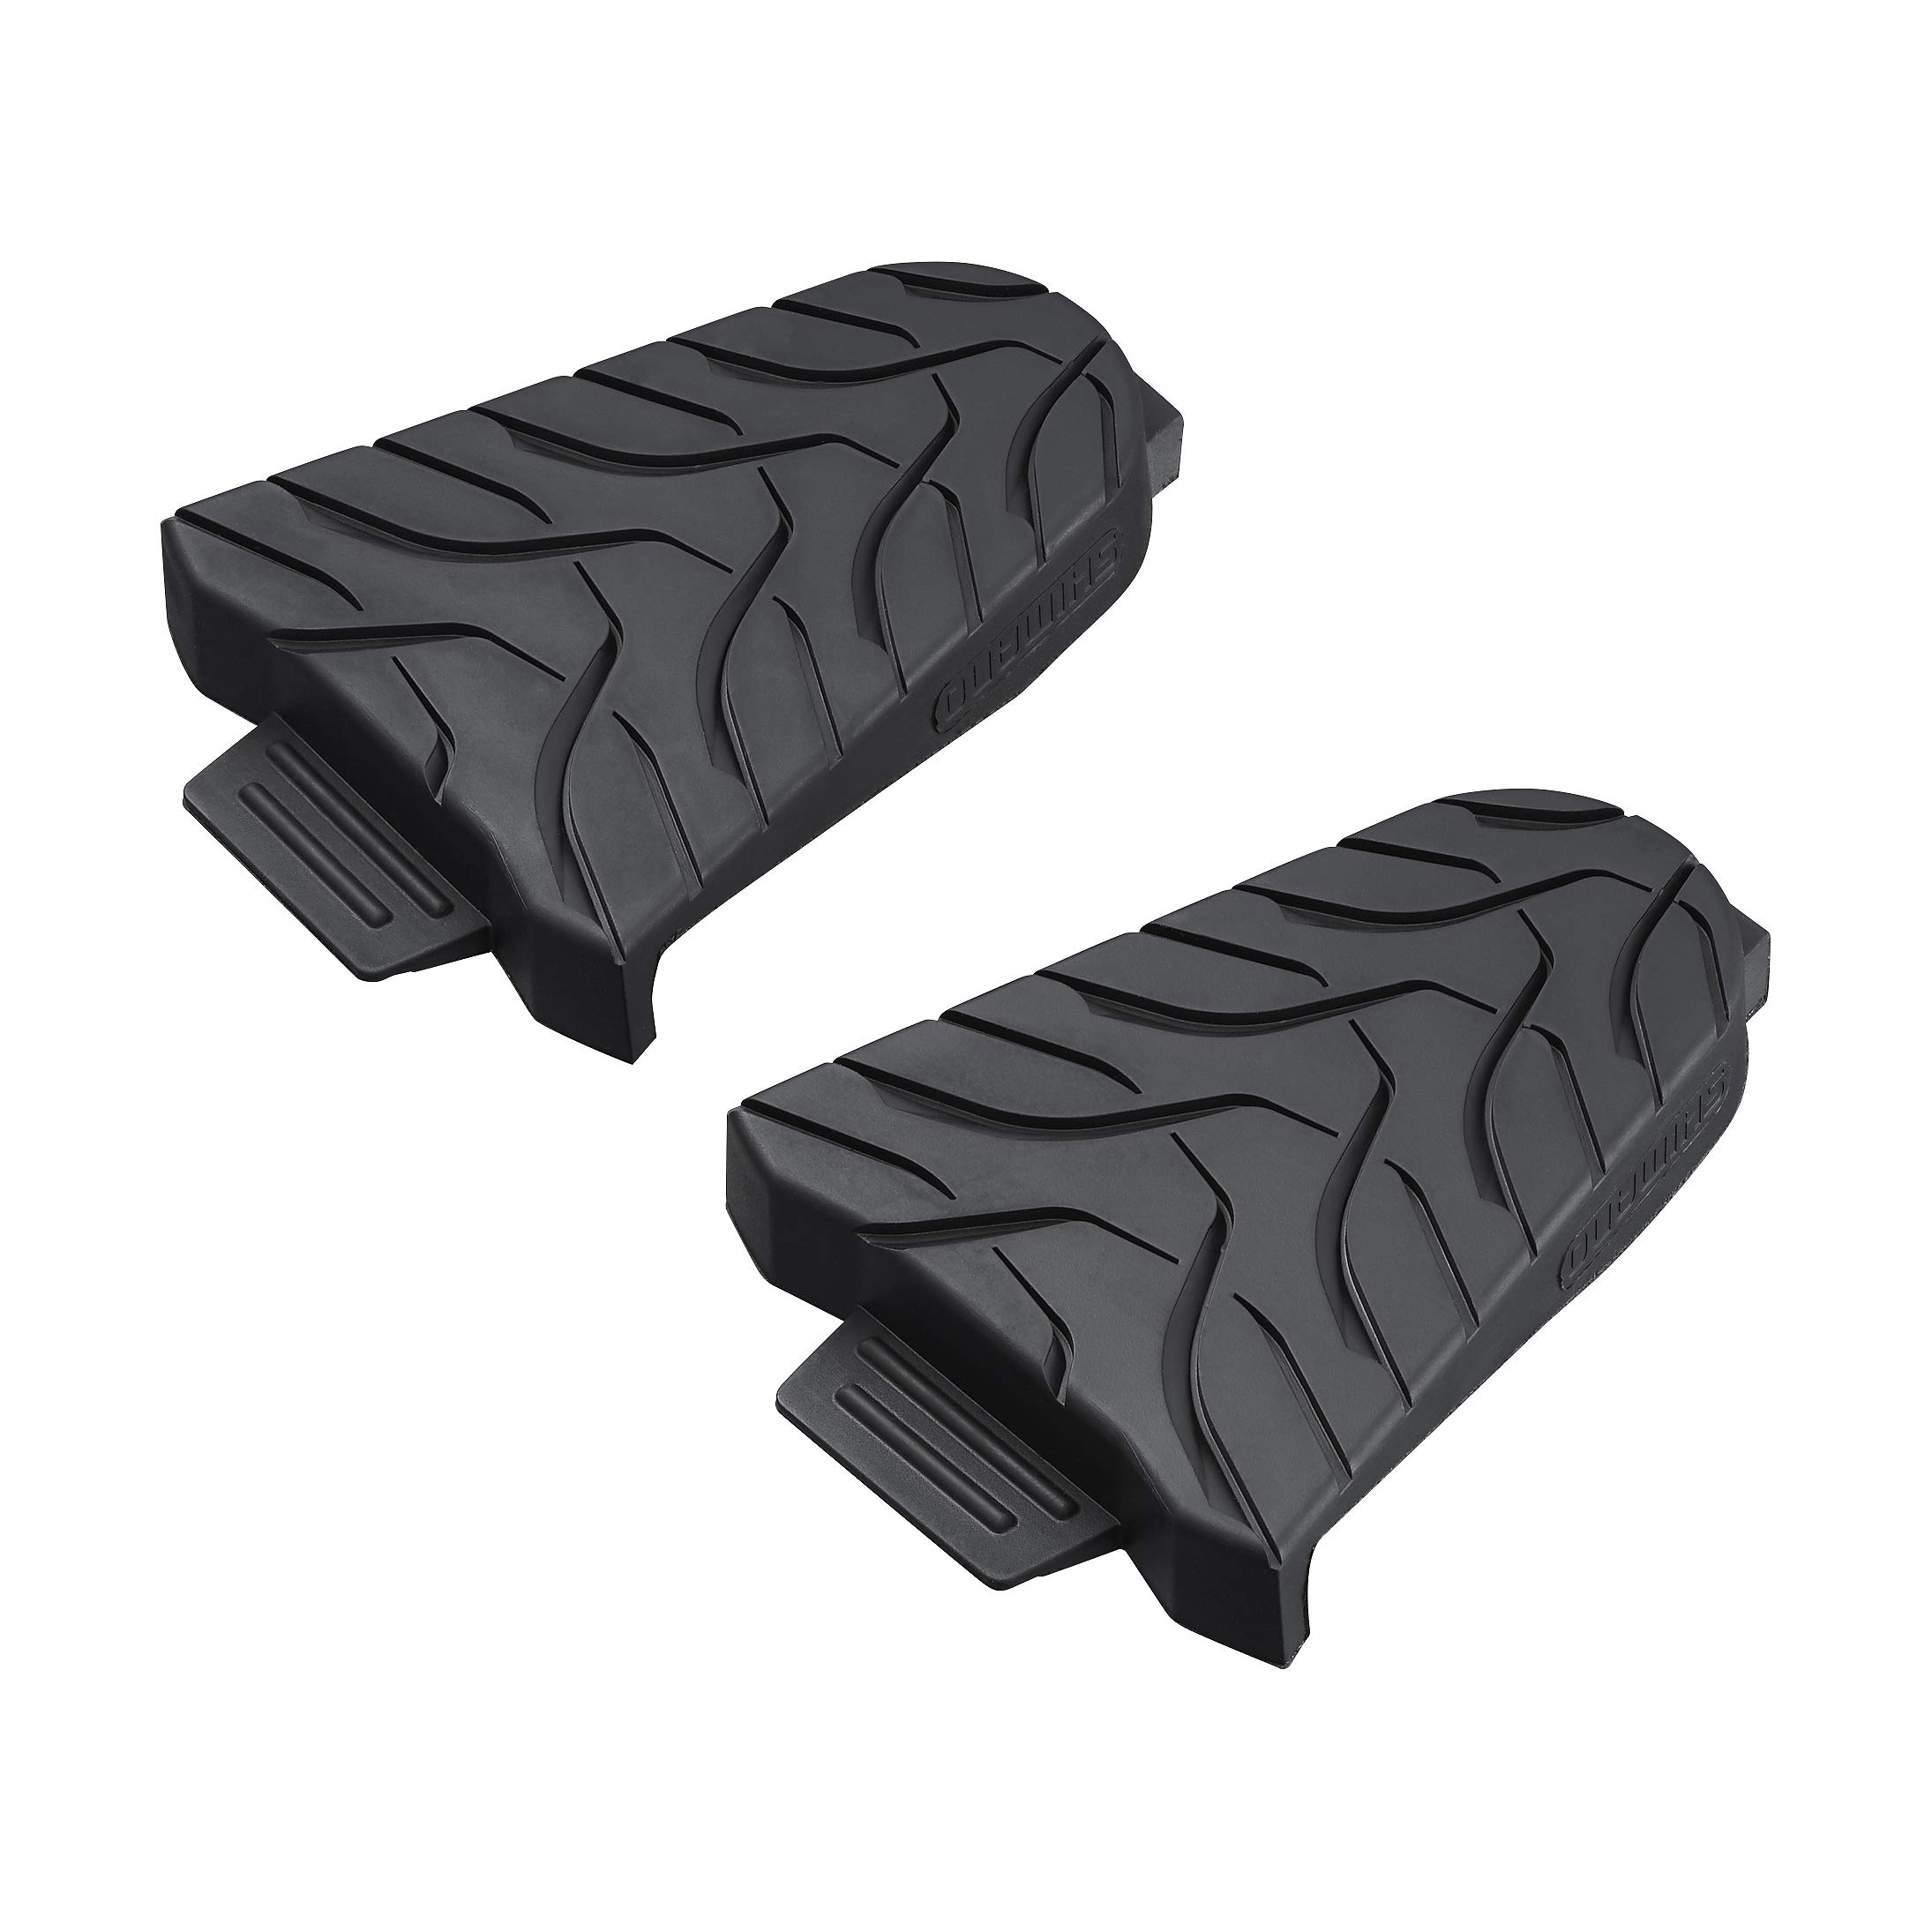 Shimano SM-SH45 SPD-SL Cleat Covers by SHIMANO